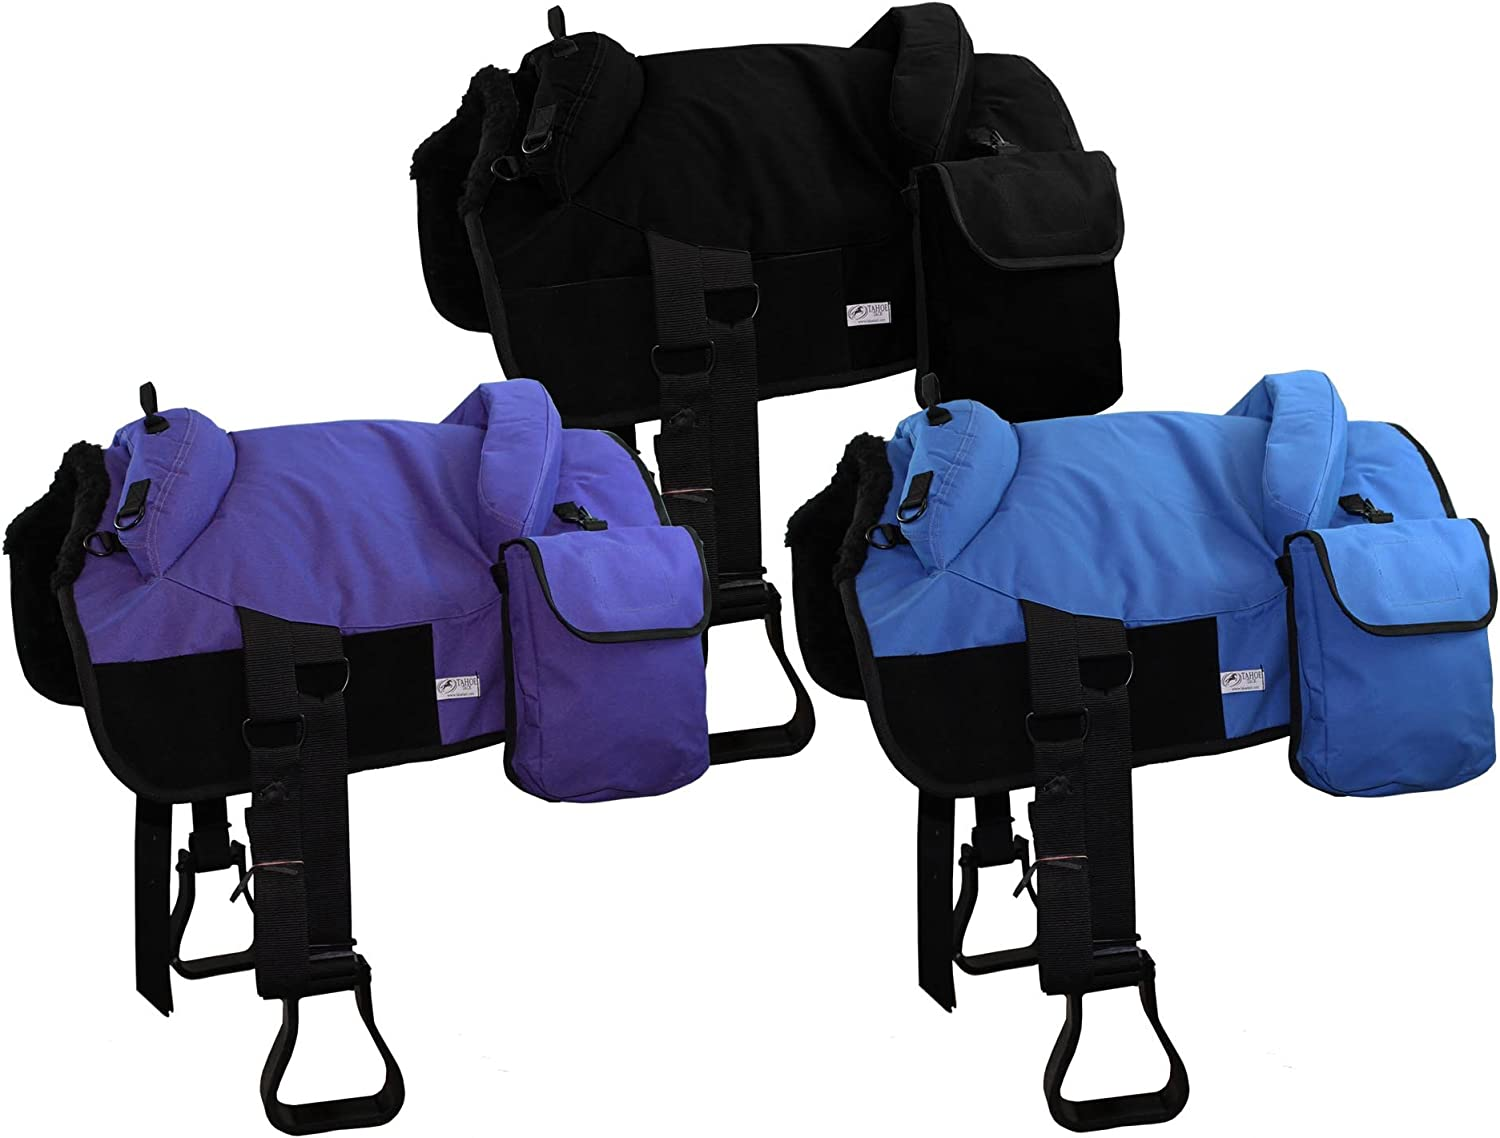 Derby Originals Tahoe Tack Polypropylene Close Contact Western Horse Bareback Pad With Detachable Saddlebags  Multiple colors